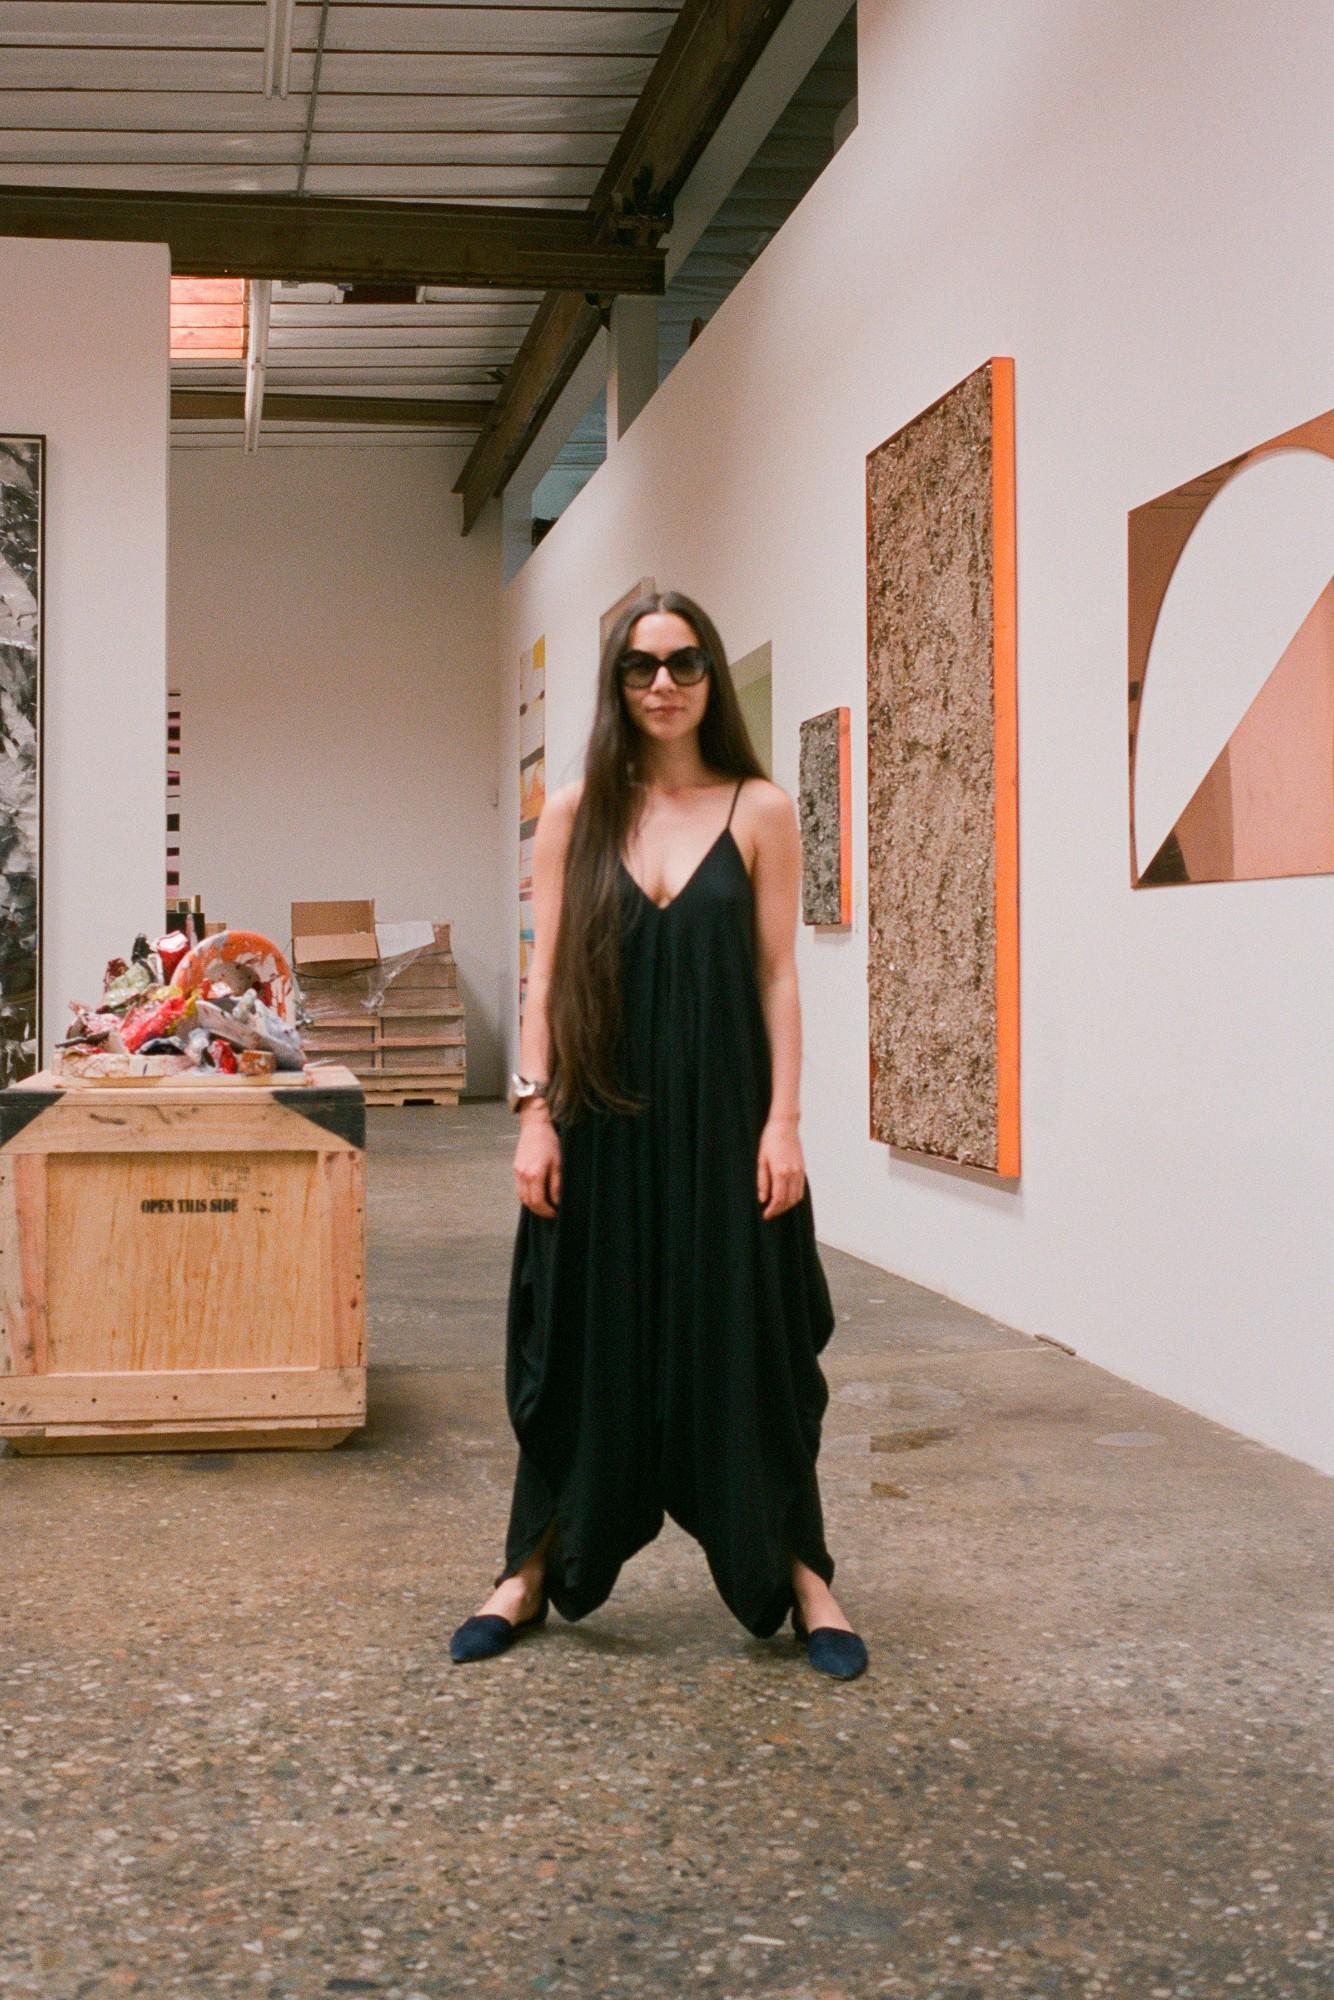 Walead Besht photograph portrait of a woman in large sunglasses and chic black outfit in an art gallery